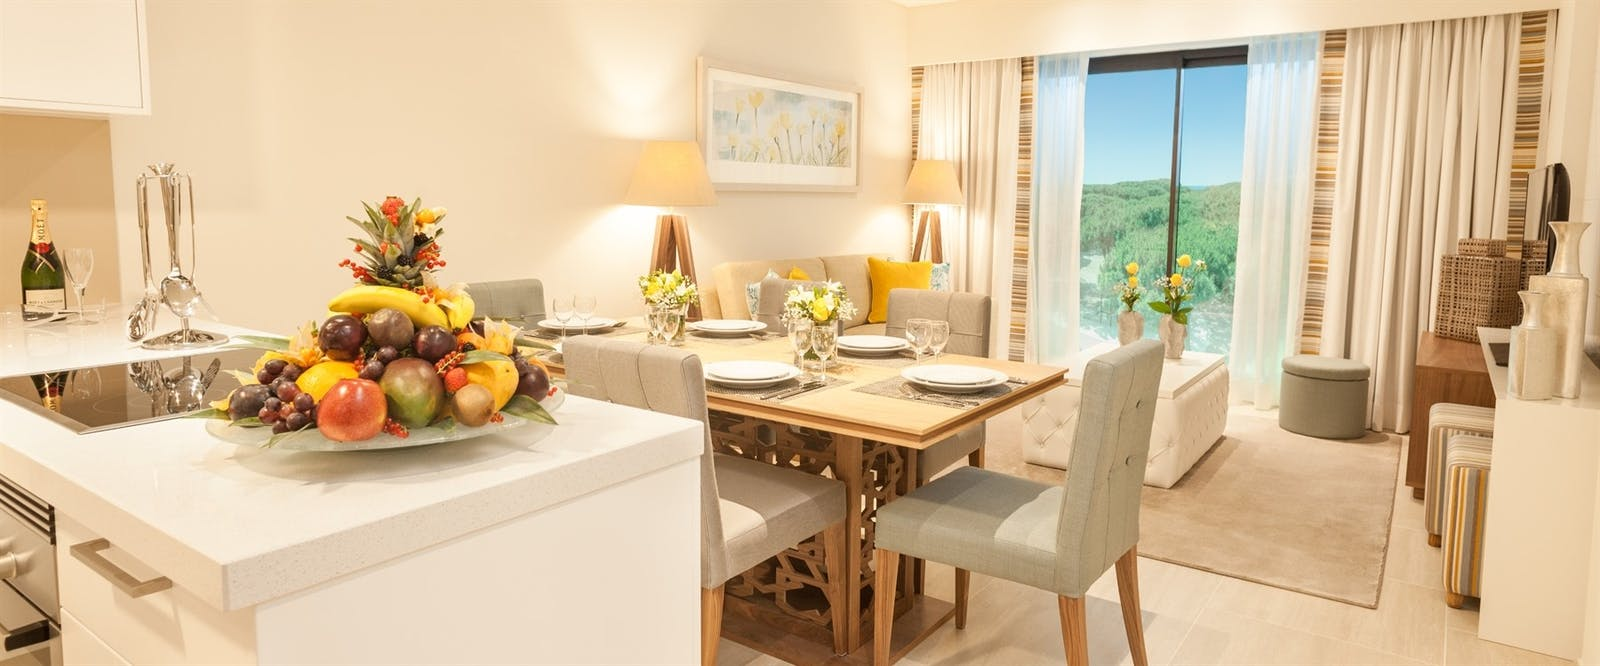 Suite, Pine Cliffs, A Luxury Collection Resort, Algarve